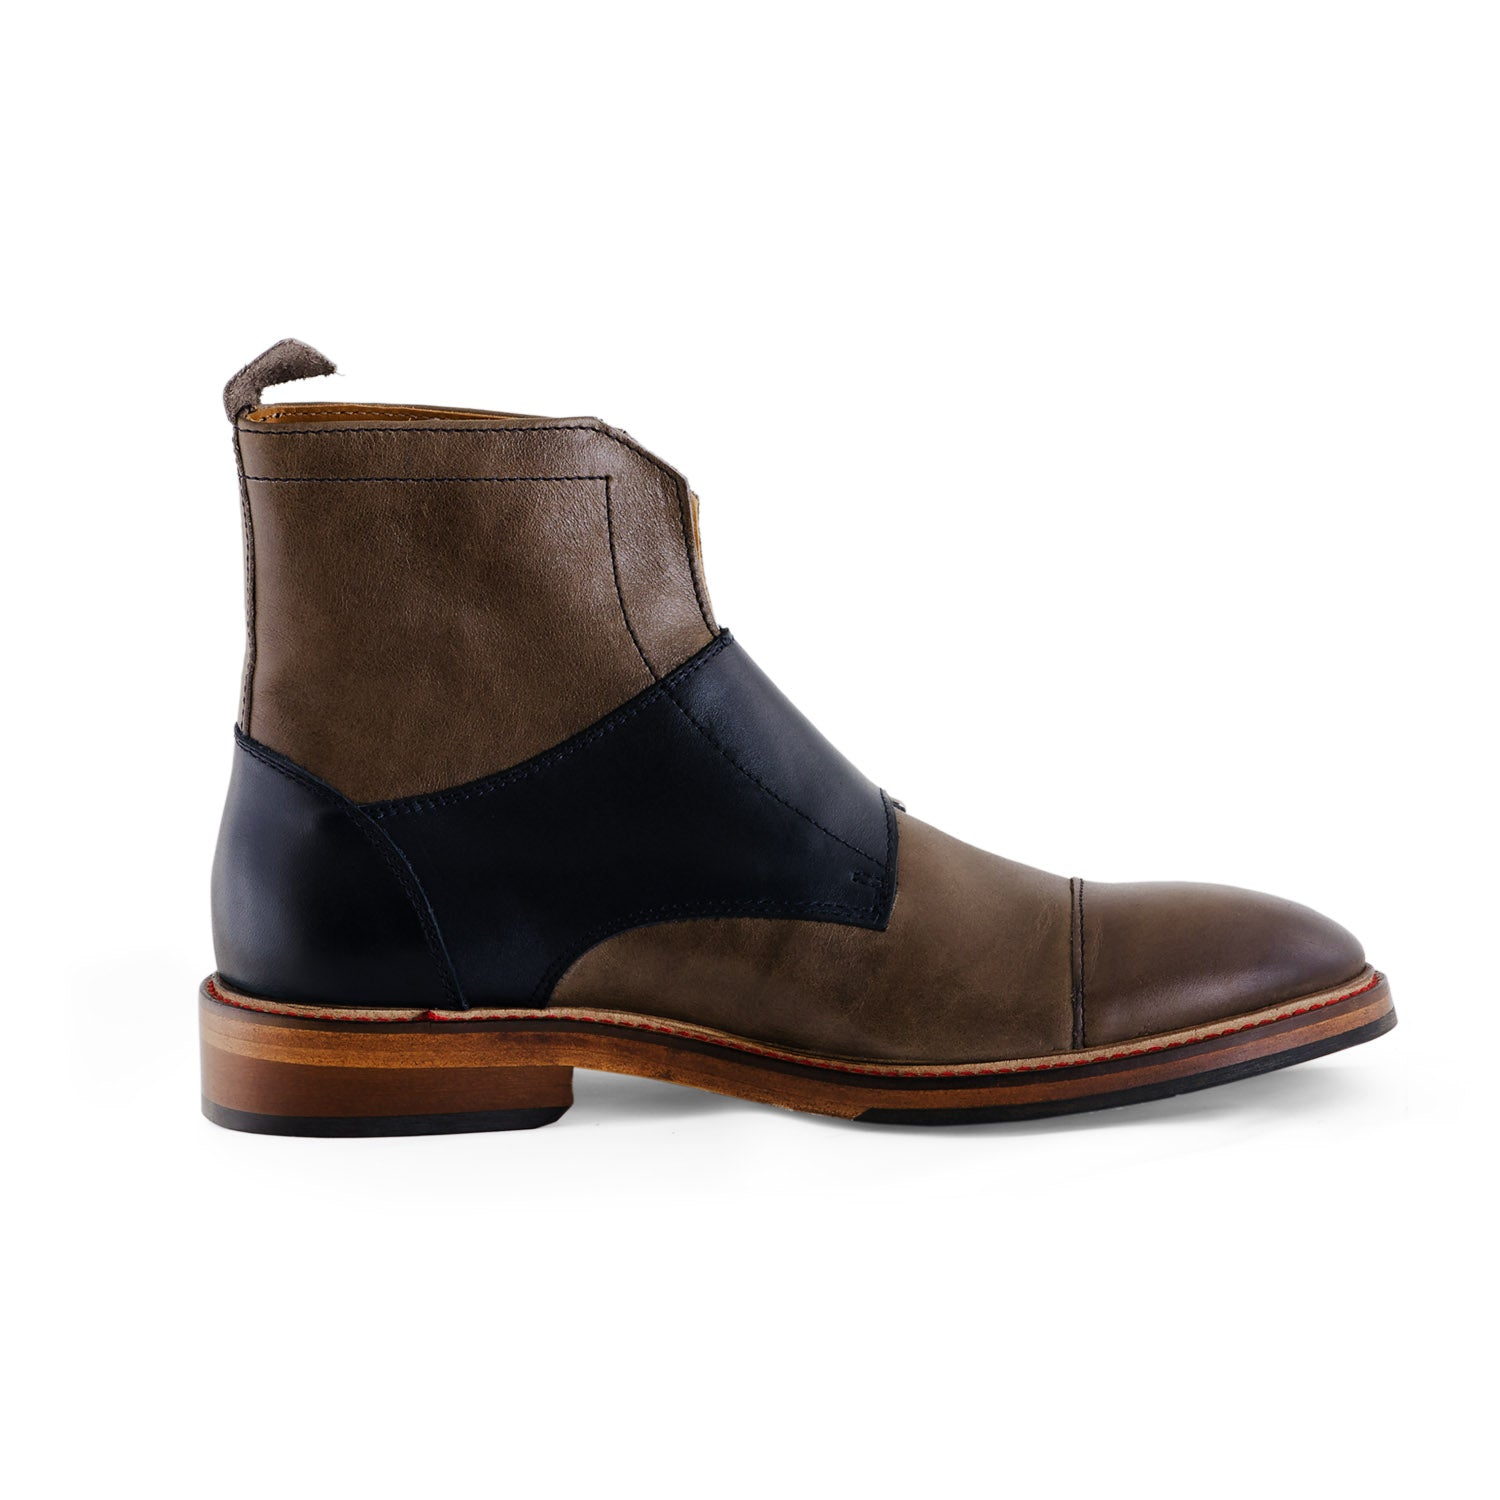 NiK Kacy Gender-Equal Gender-Neutral Luxury Monkstrap Boots in Navy Blue and Grey Genuine Leather